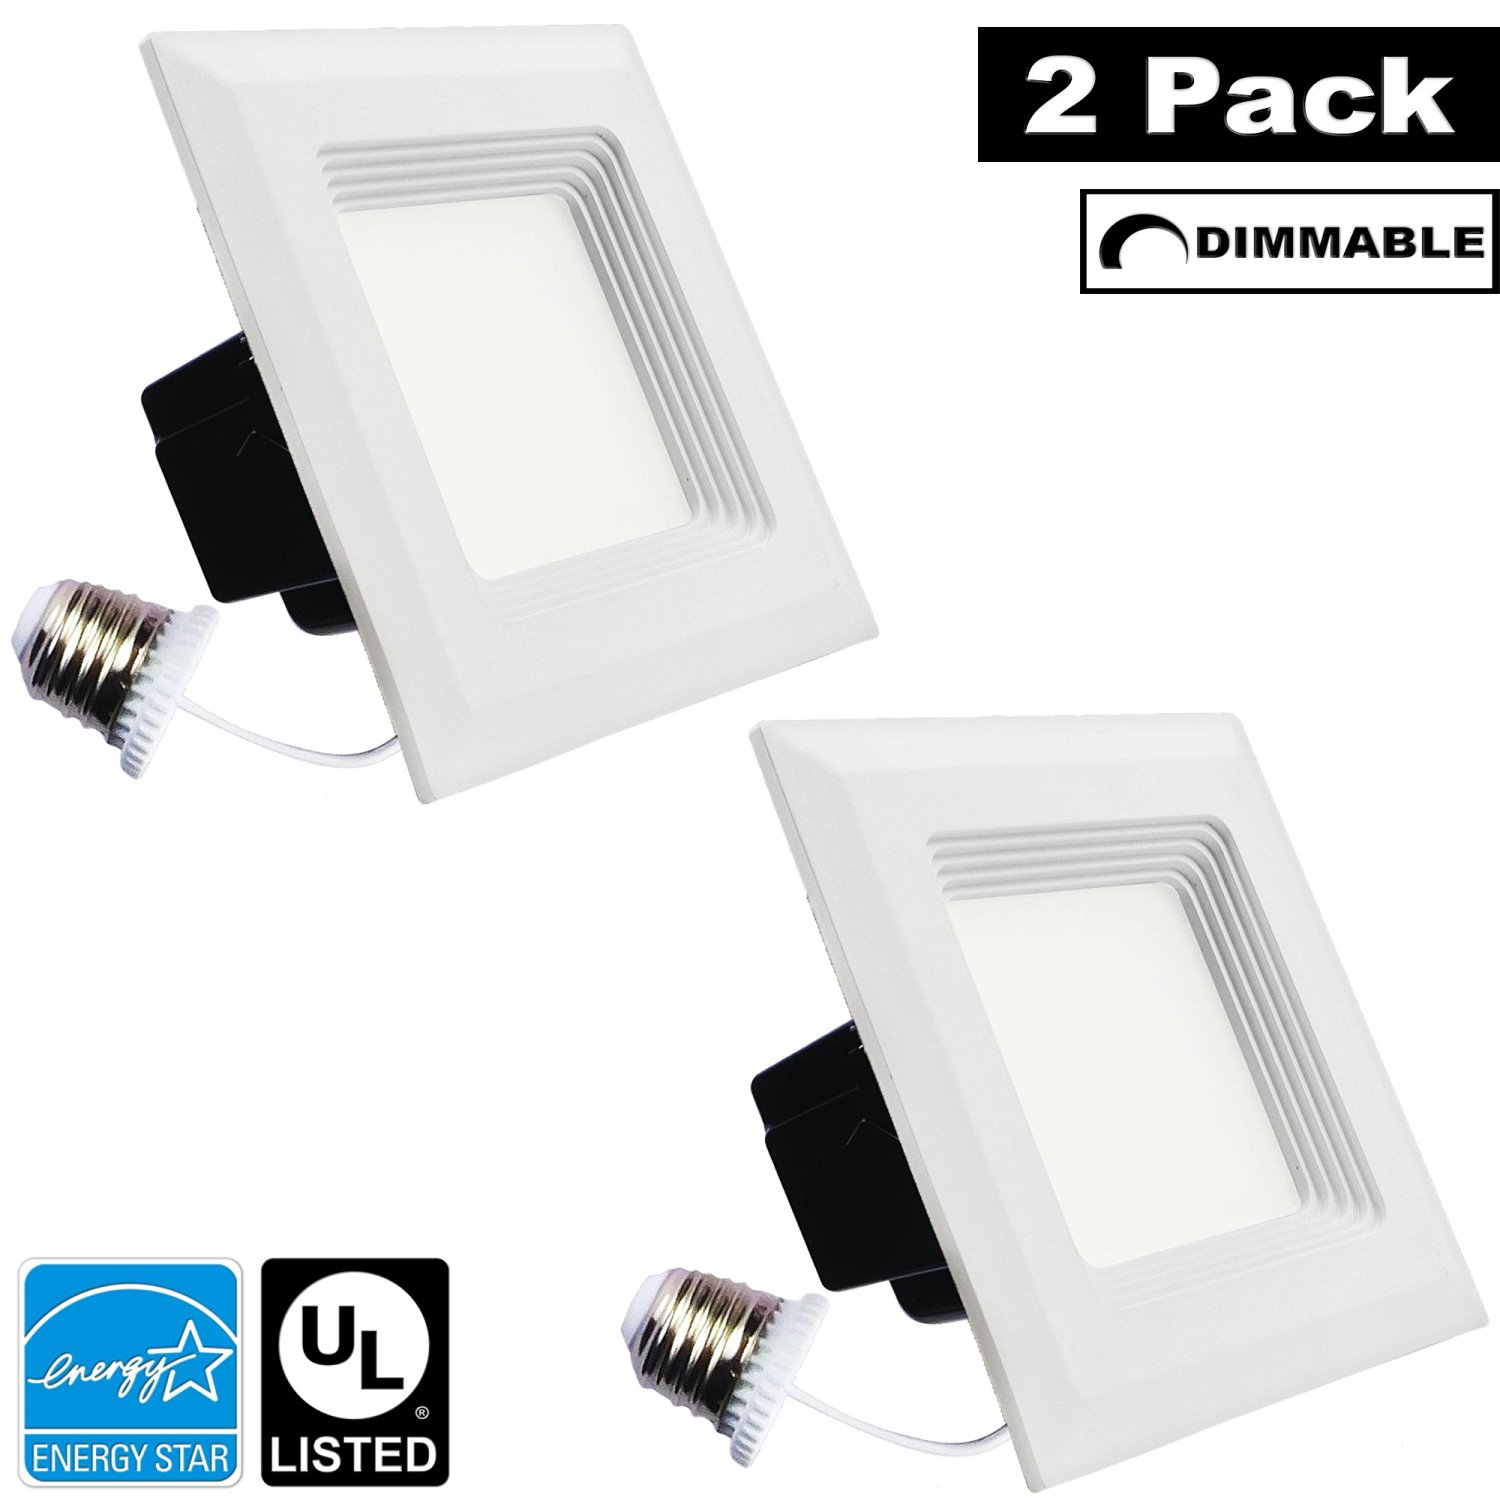 Luxrite LR23037 (2-Pack) 15W 5/6 Inch LED Square Retrofit Downlight, 120W Equivalent, ENERGY STAR, Dimmable, Soft White 3000K, Recessed LED Ceiling Light, UL Listed